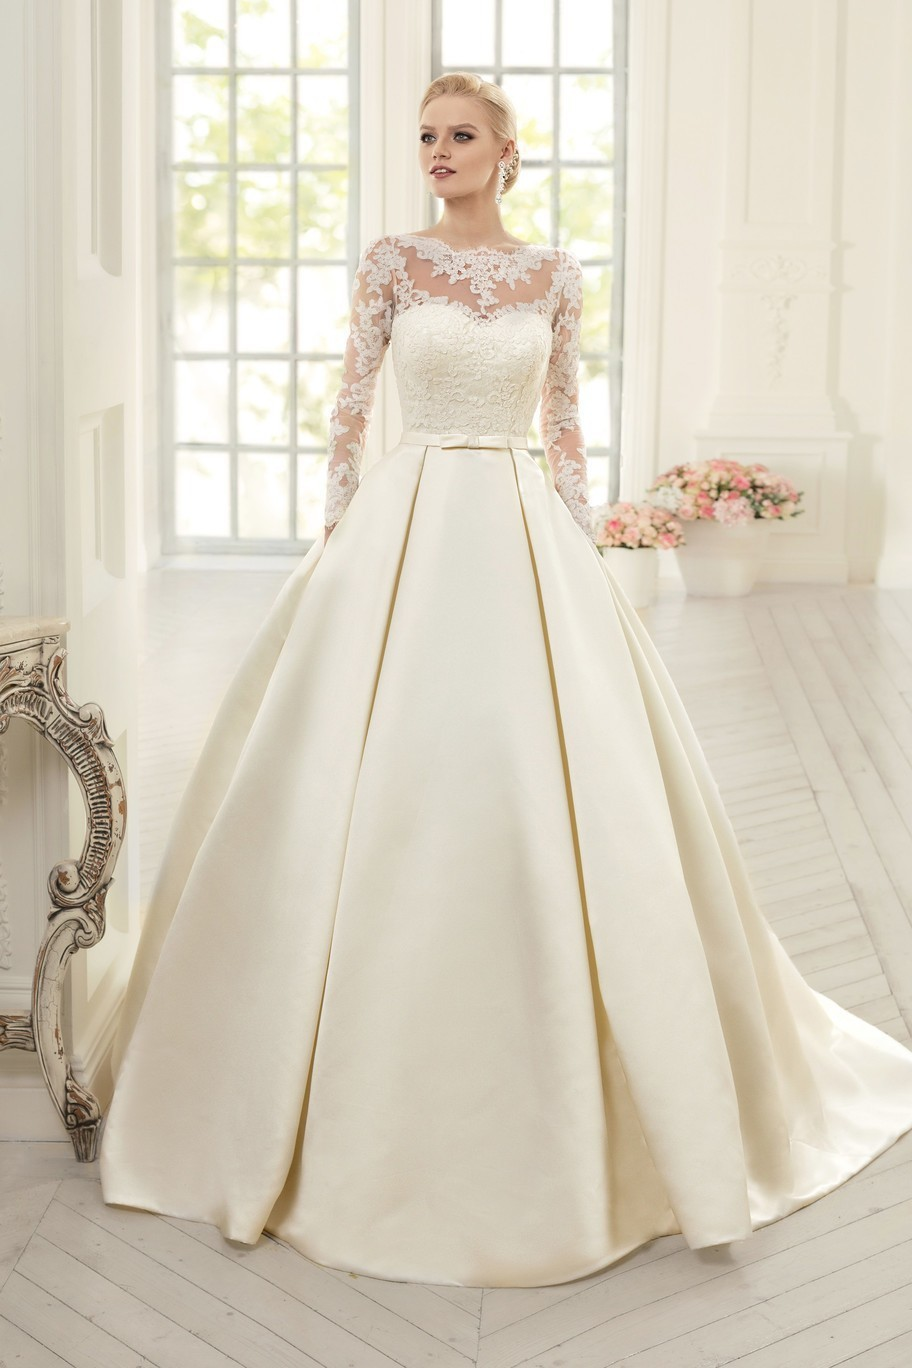 Elegant Long Sleeve Lace 2018 Puffy Backless Bridal Gown Vestido De Noiva Princesa Robe De Mariee Mother Of The Bride Dresses